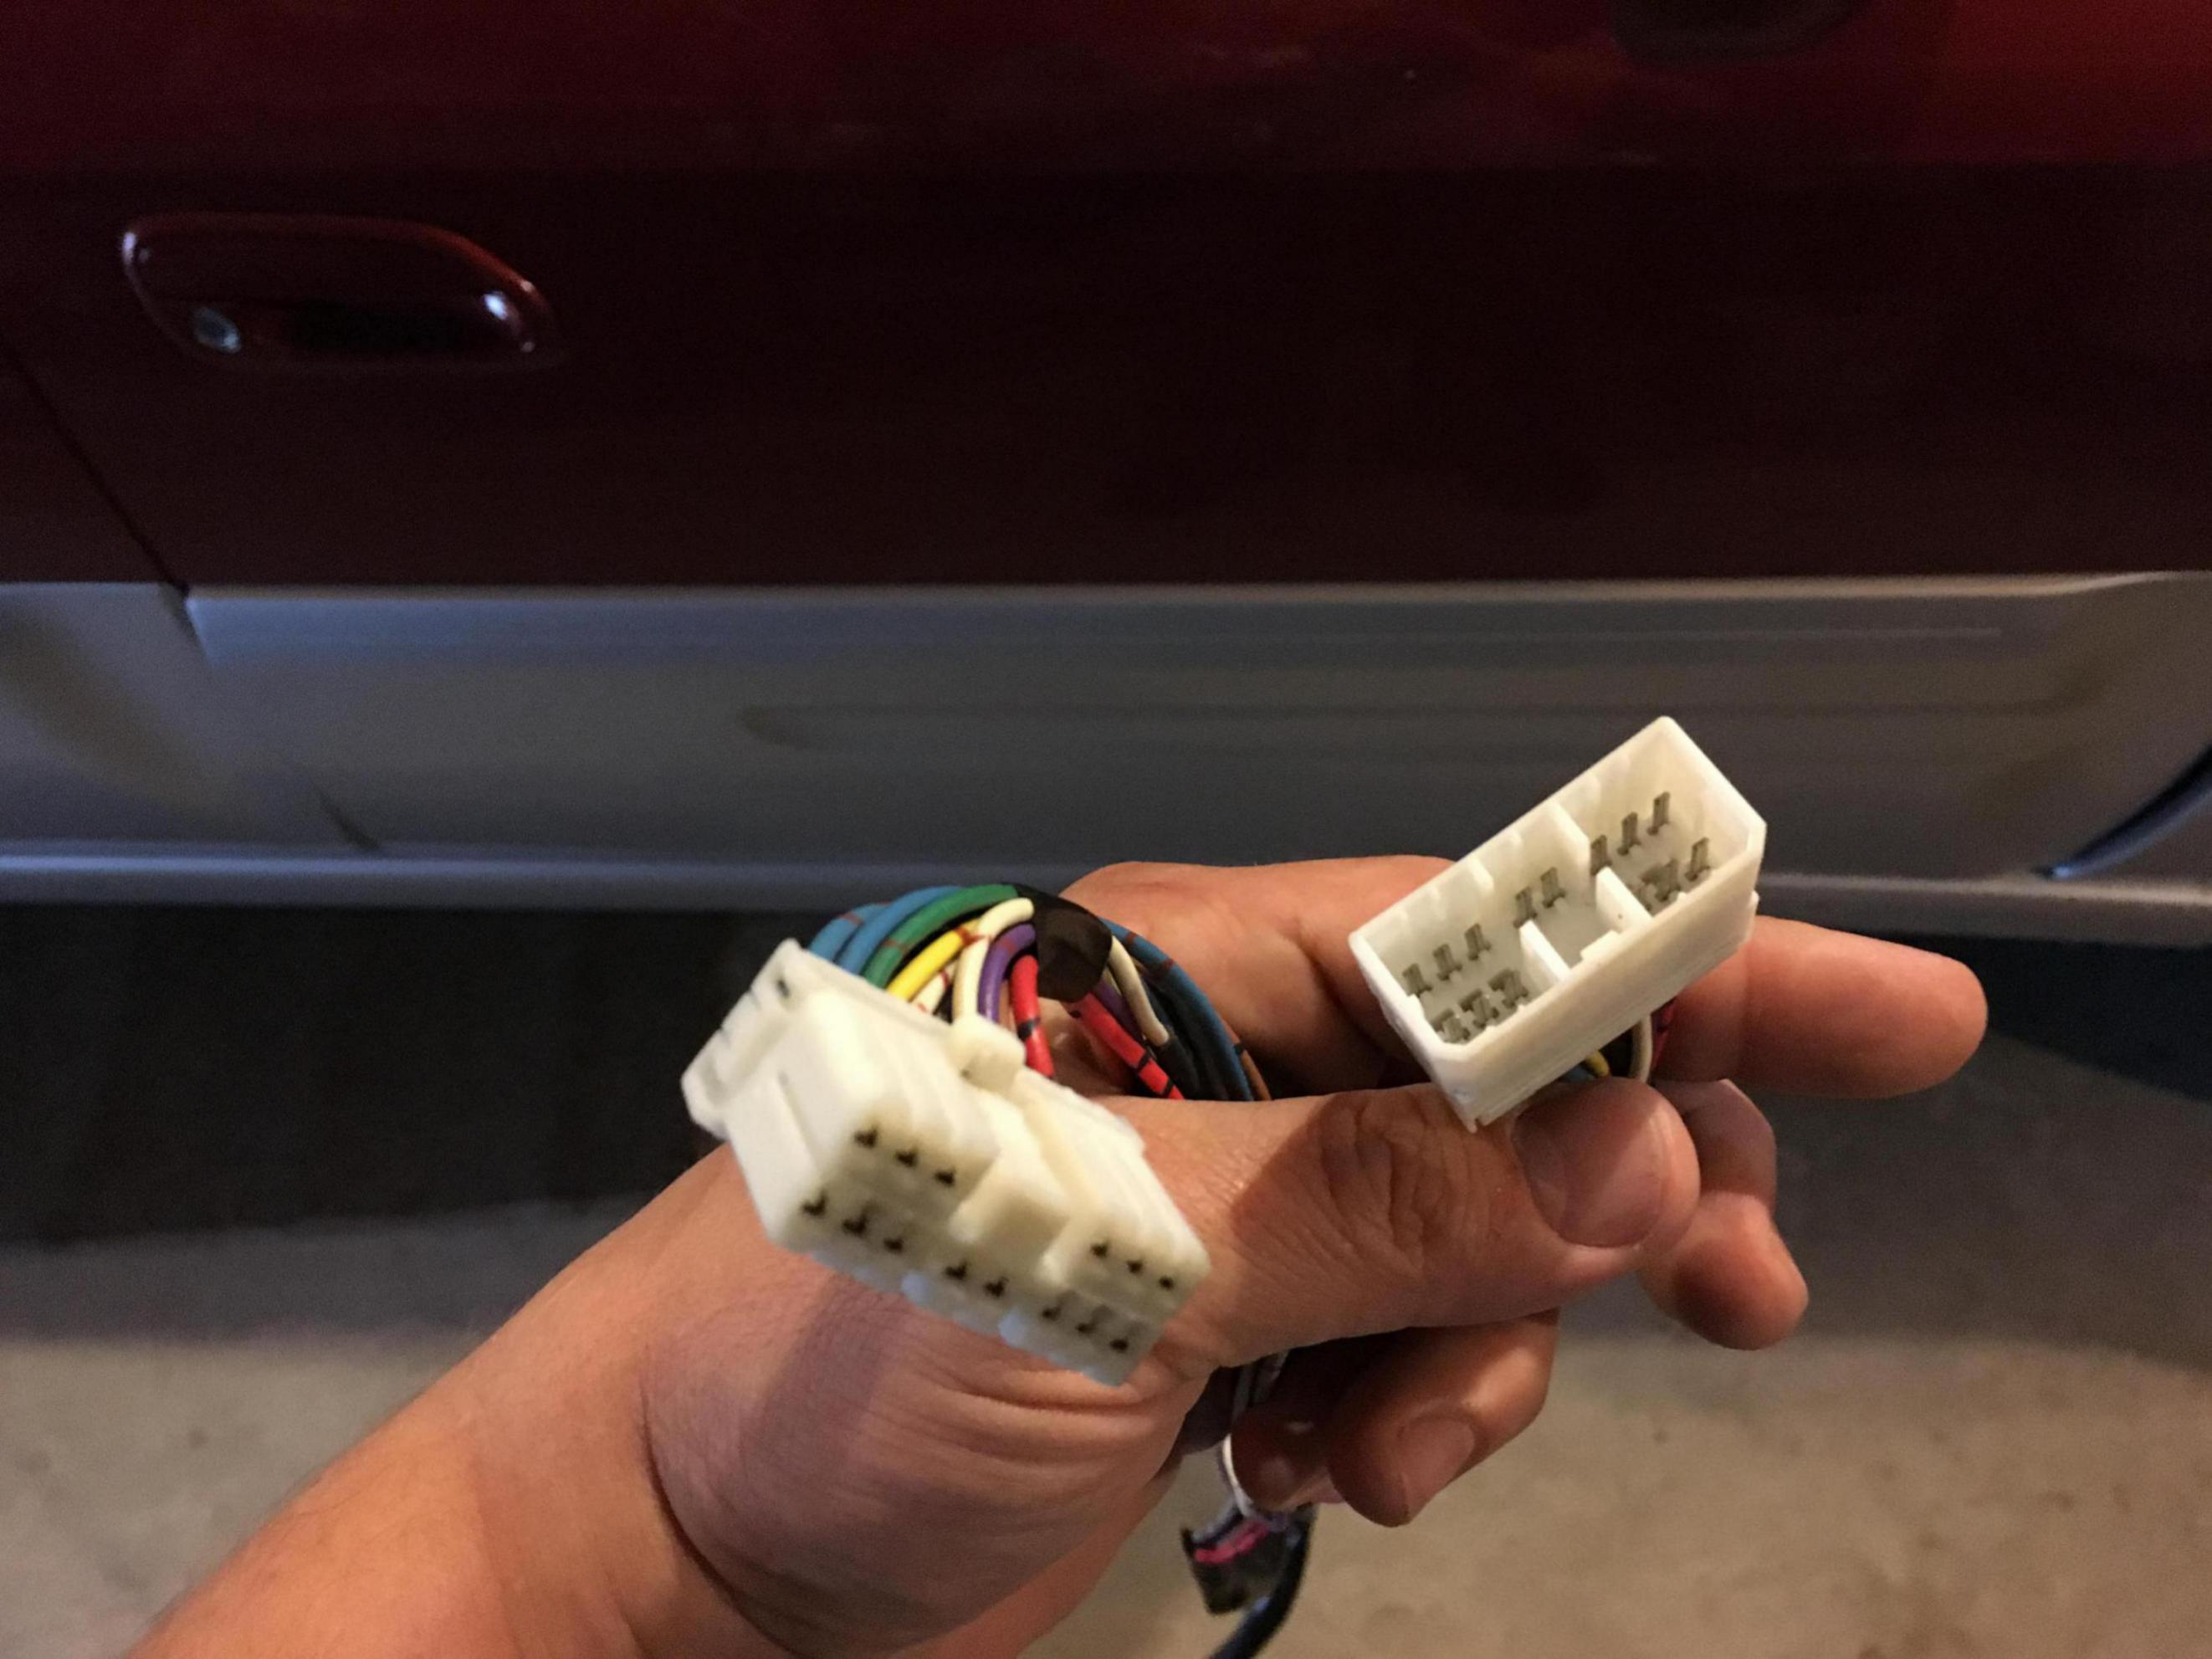 Extra Wiring Harness Behind Stereo Subaru Outback Impreza Front Speaker Click Image For Larger Version Name Img 7694 1493296884762 Views 127 Size 3402